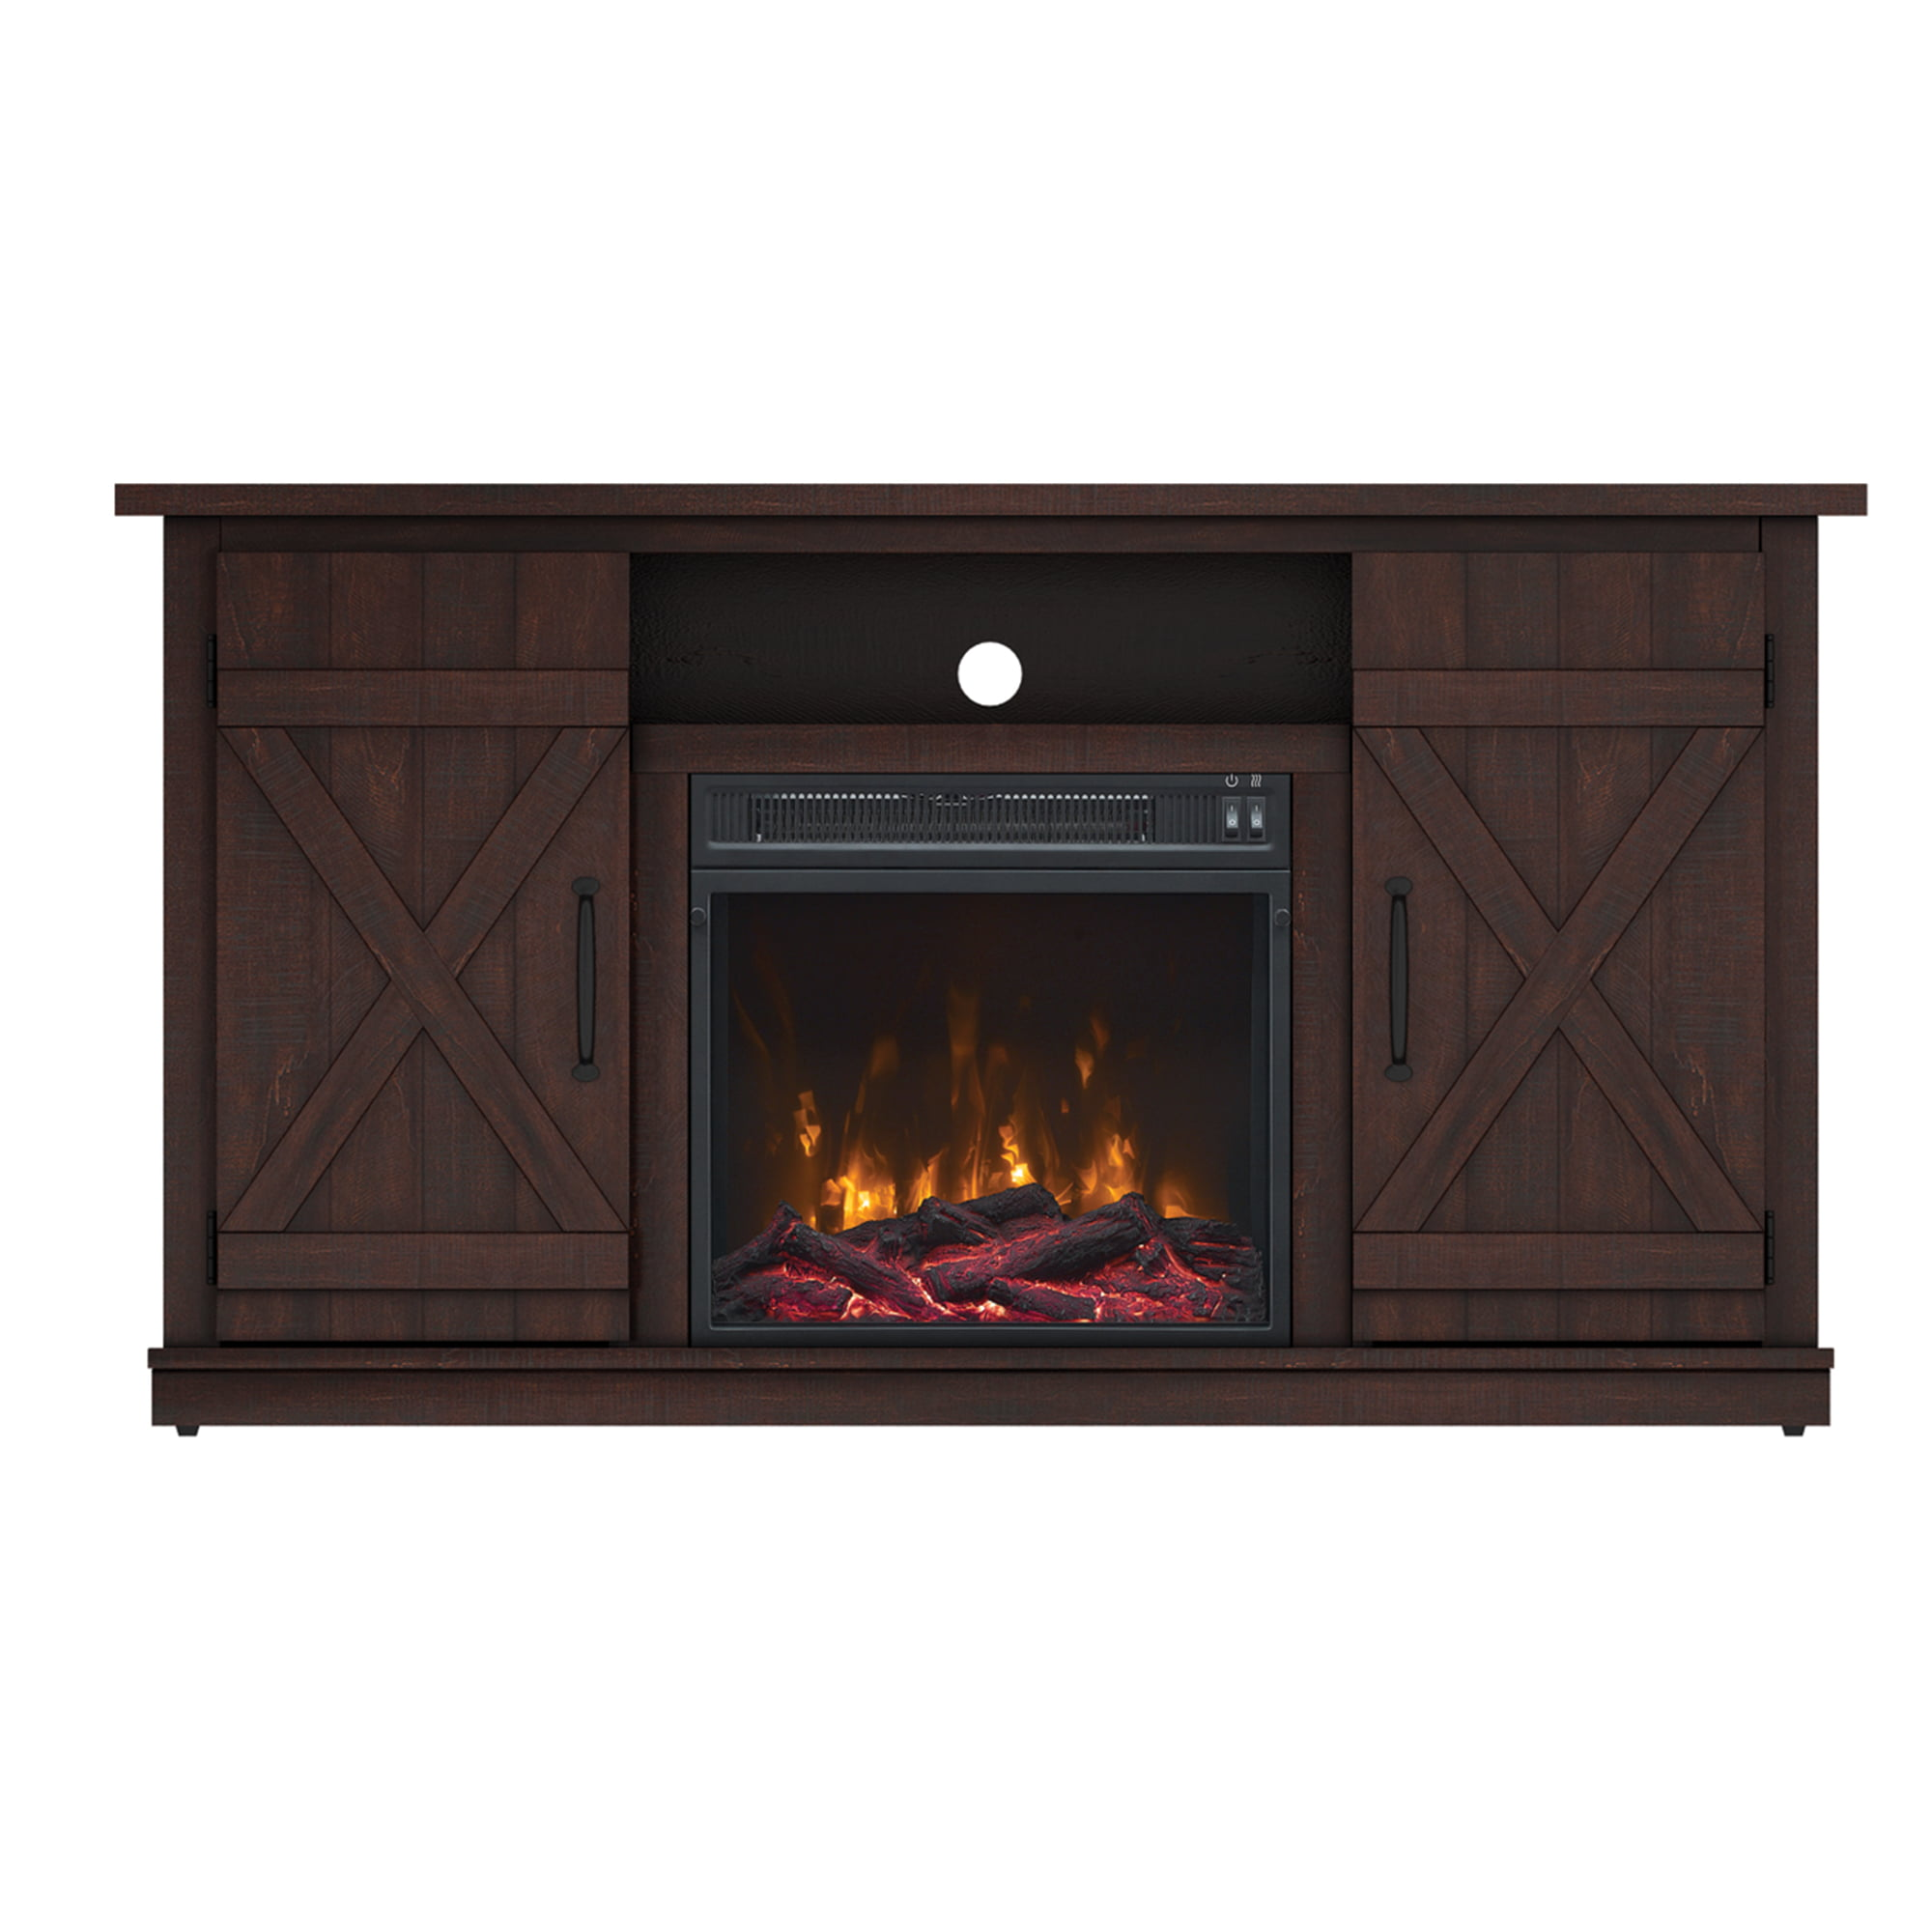 55 inch tv stand with fireplace media console electric entertainment center sale 611768103348 ebay. Black Bedroom Furniture Sets. Home Design Ideas